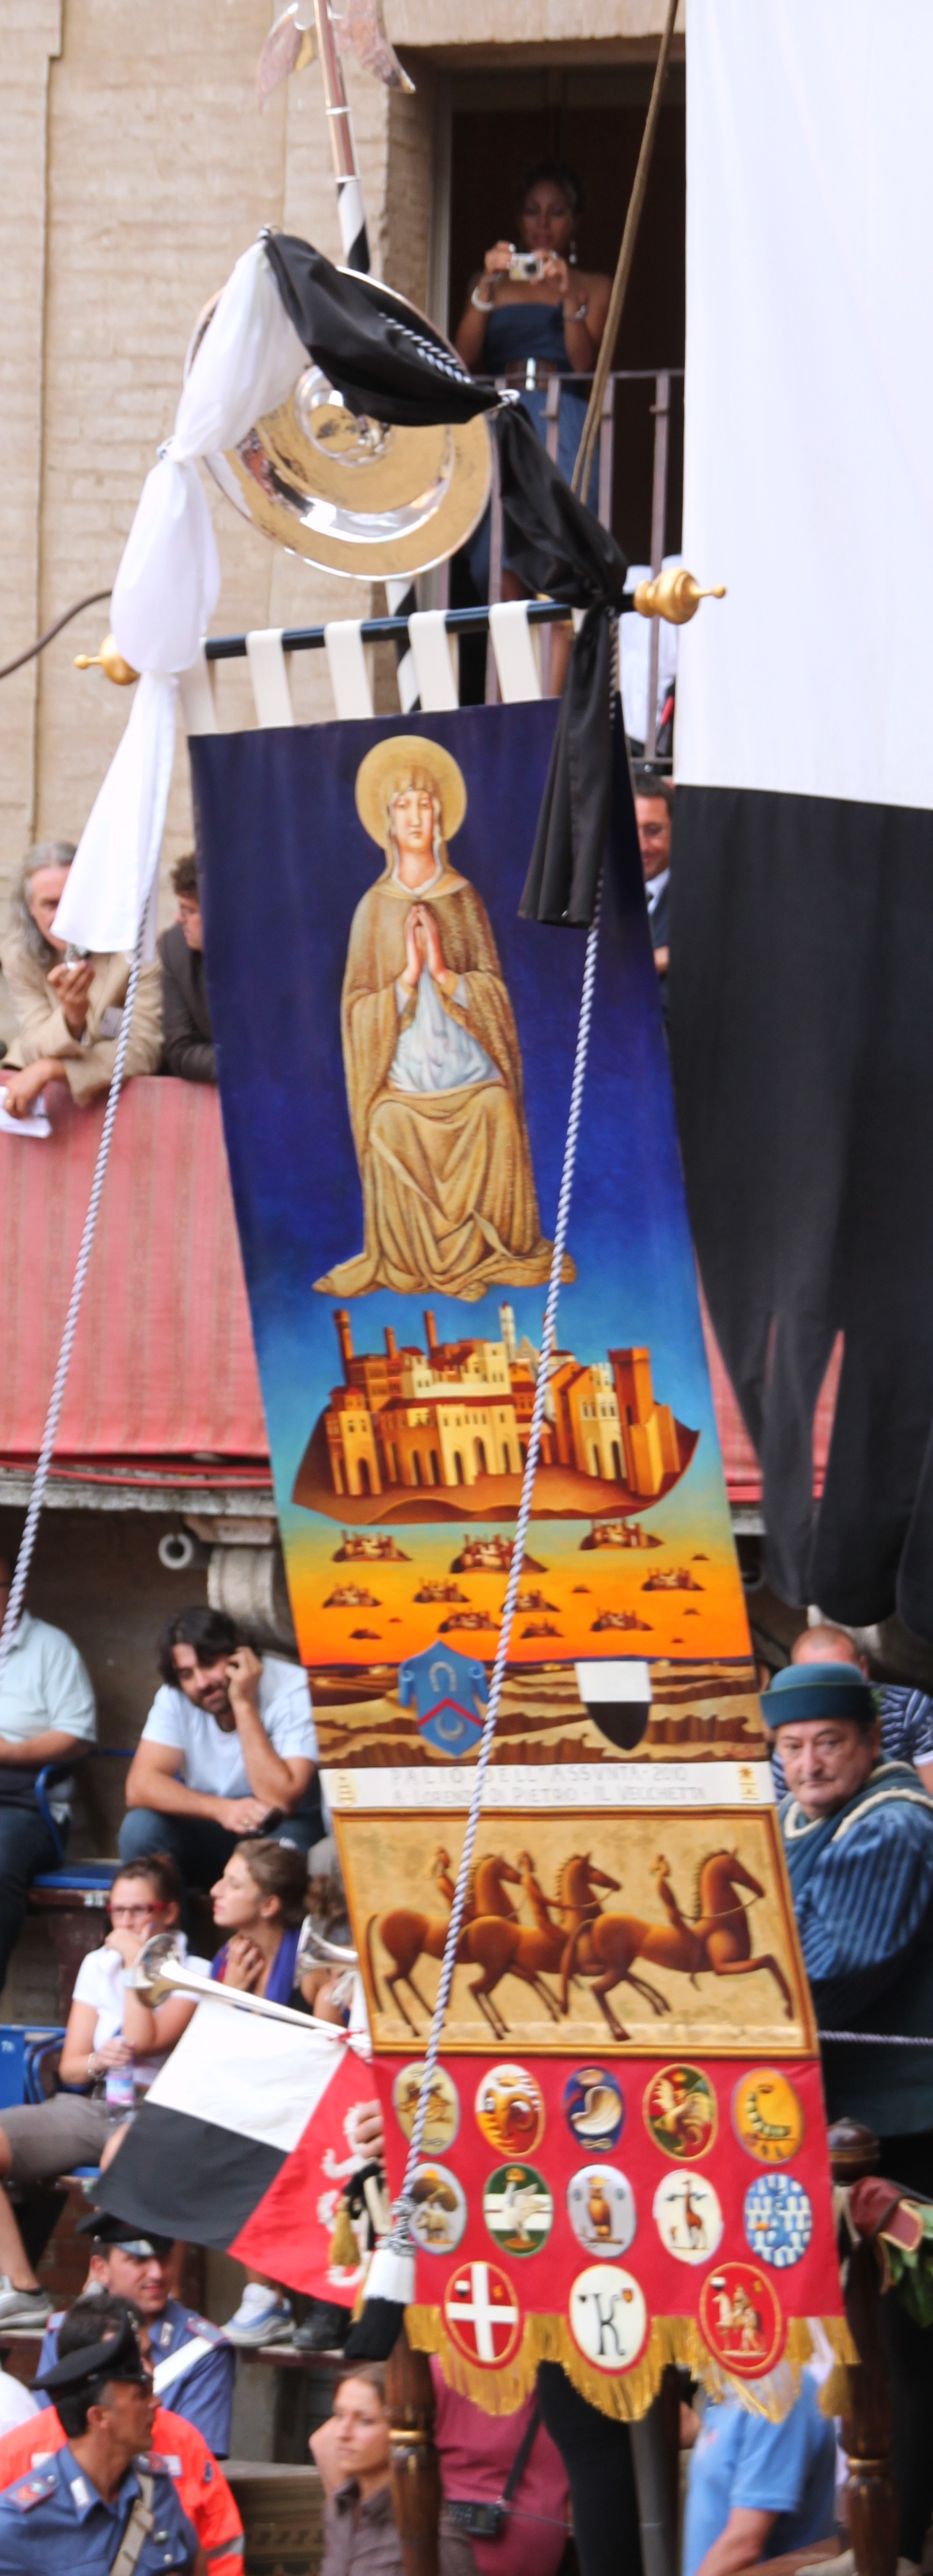 The Palio or banner for the Palio dell'Assunta, Siena, August 2010